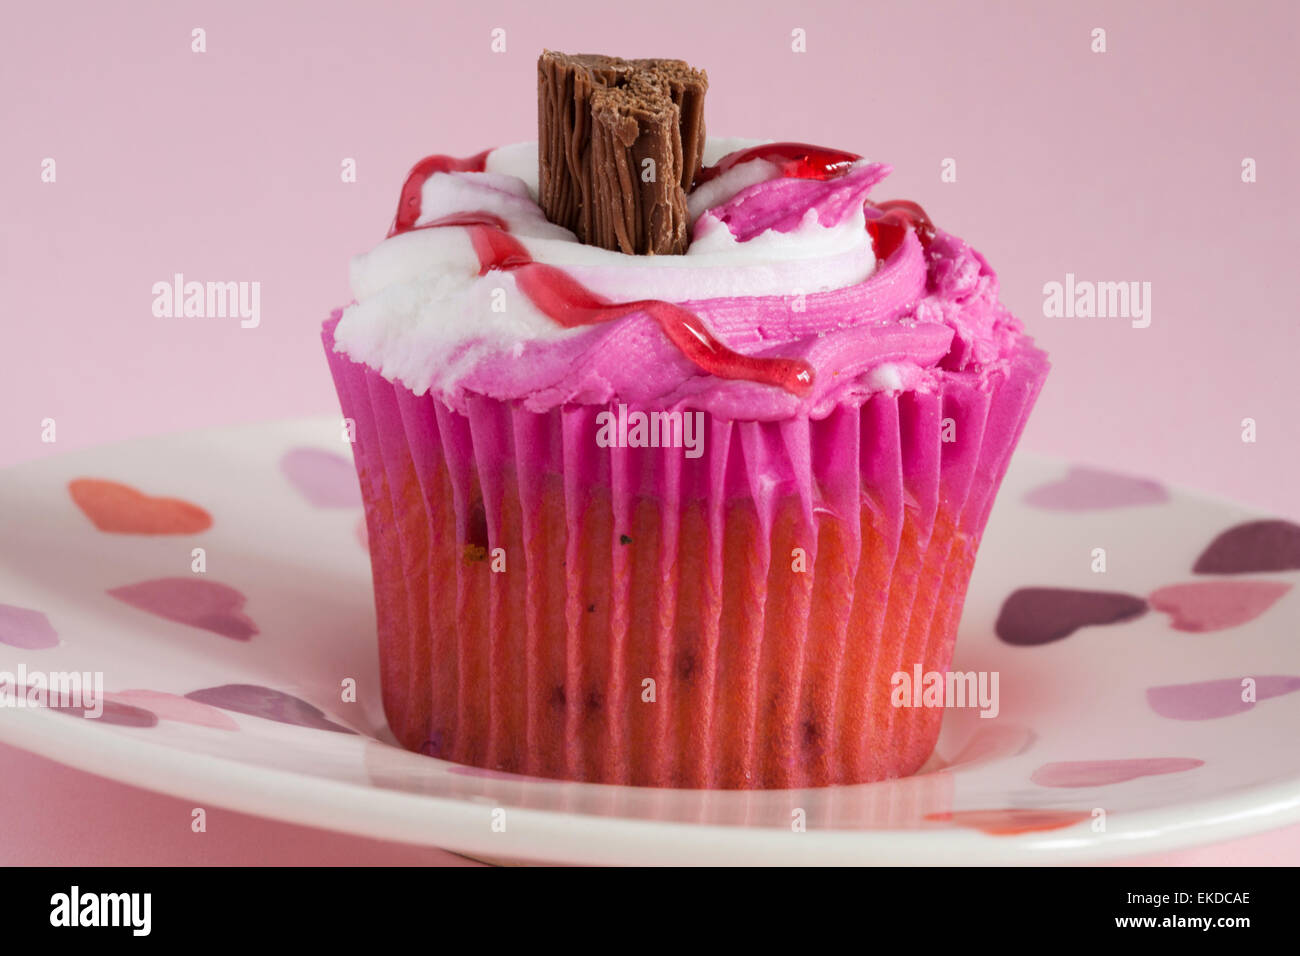 Raspberry Ripple cupcake with chocolate flake on hearts plate set on pink background - Stock Image